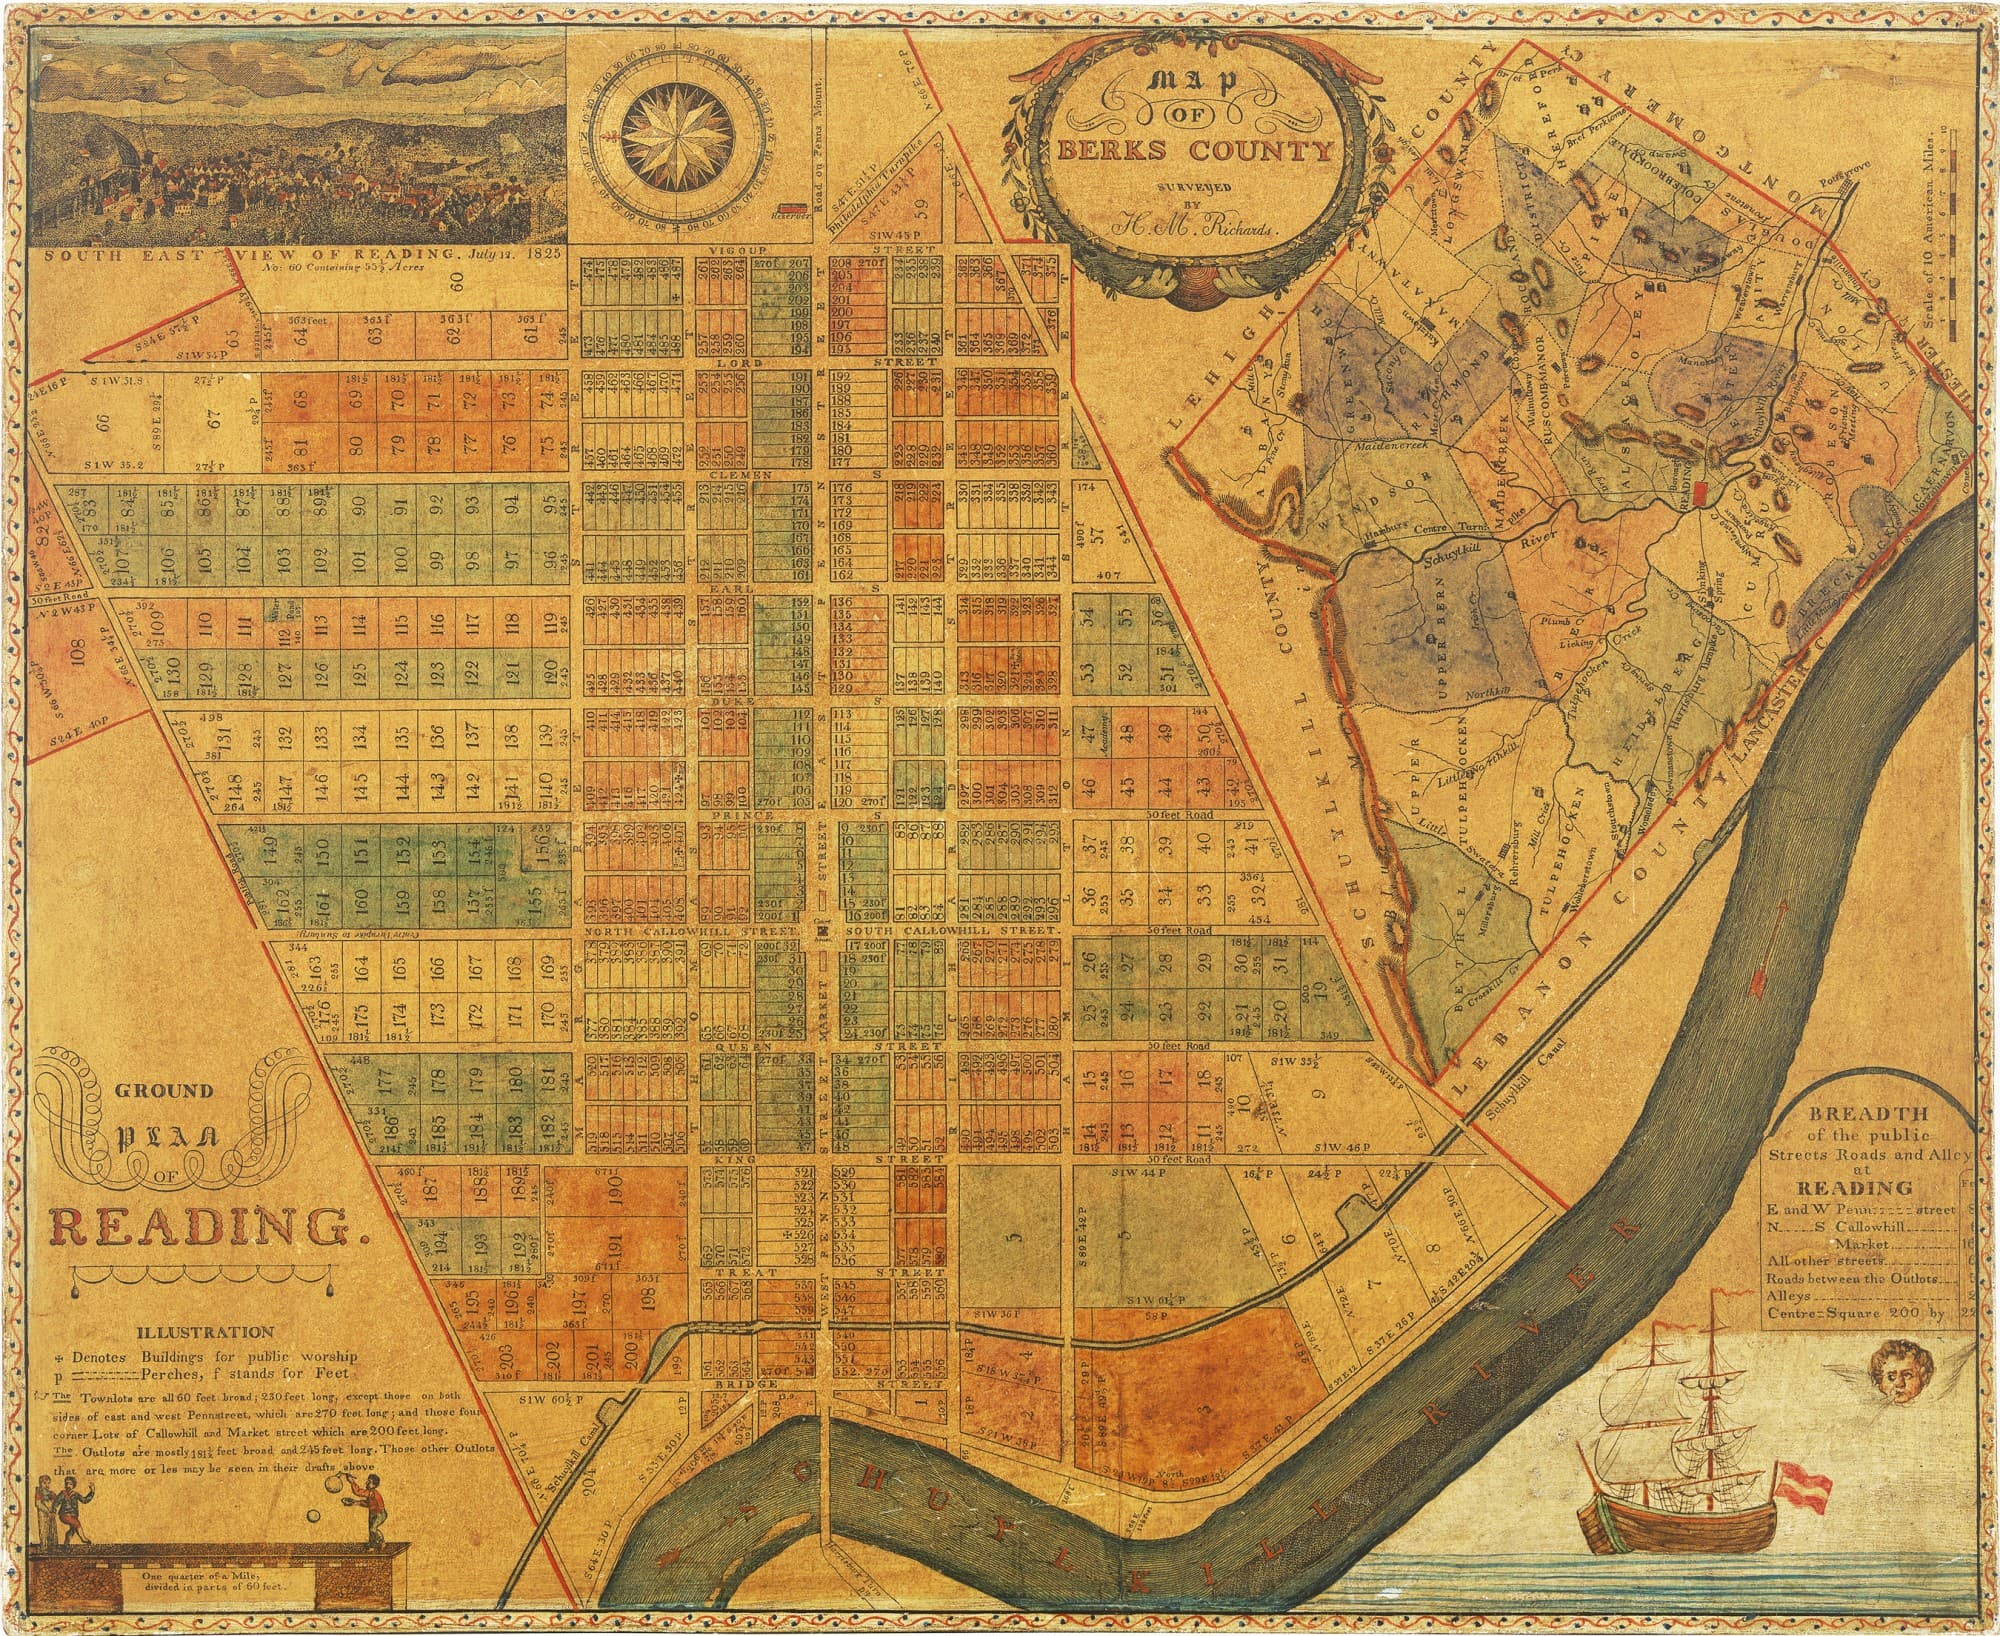 Early map of Reading, Pennsylvania, with wonderful folk-art